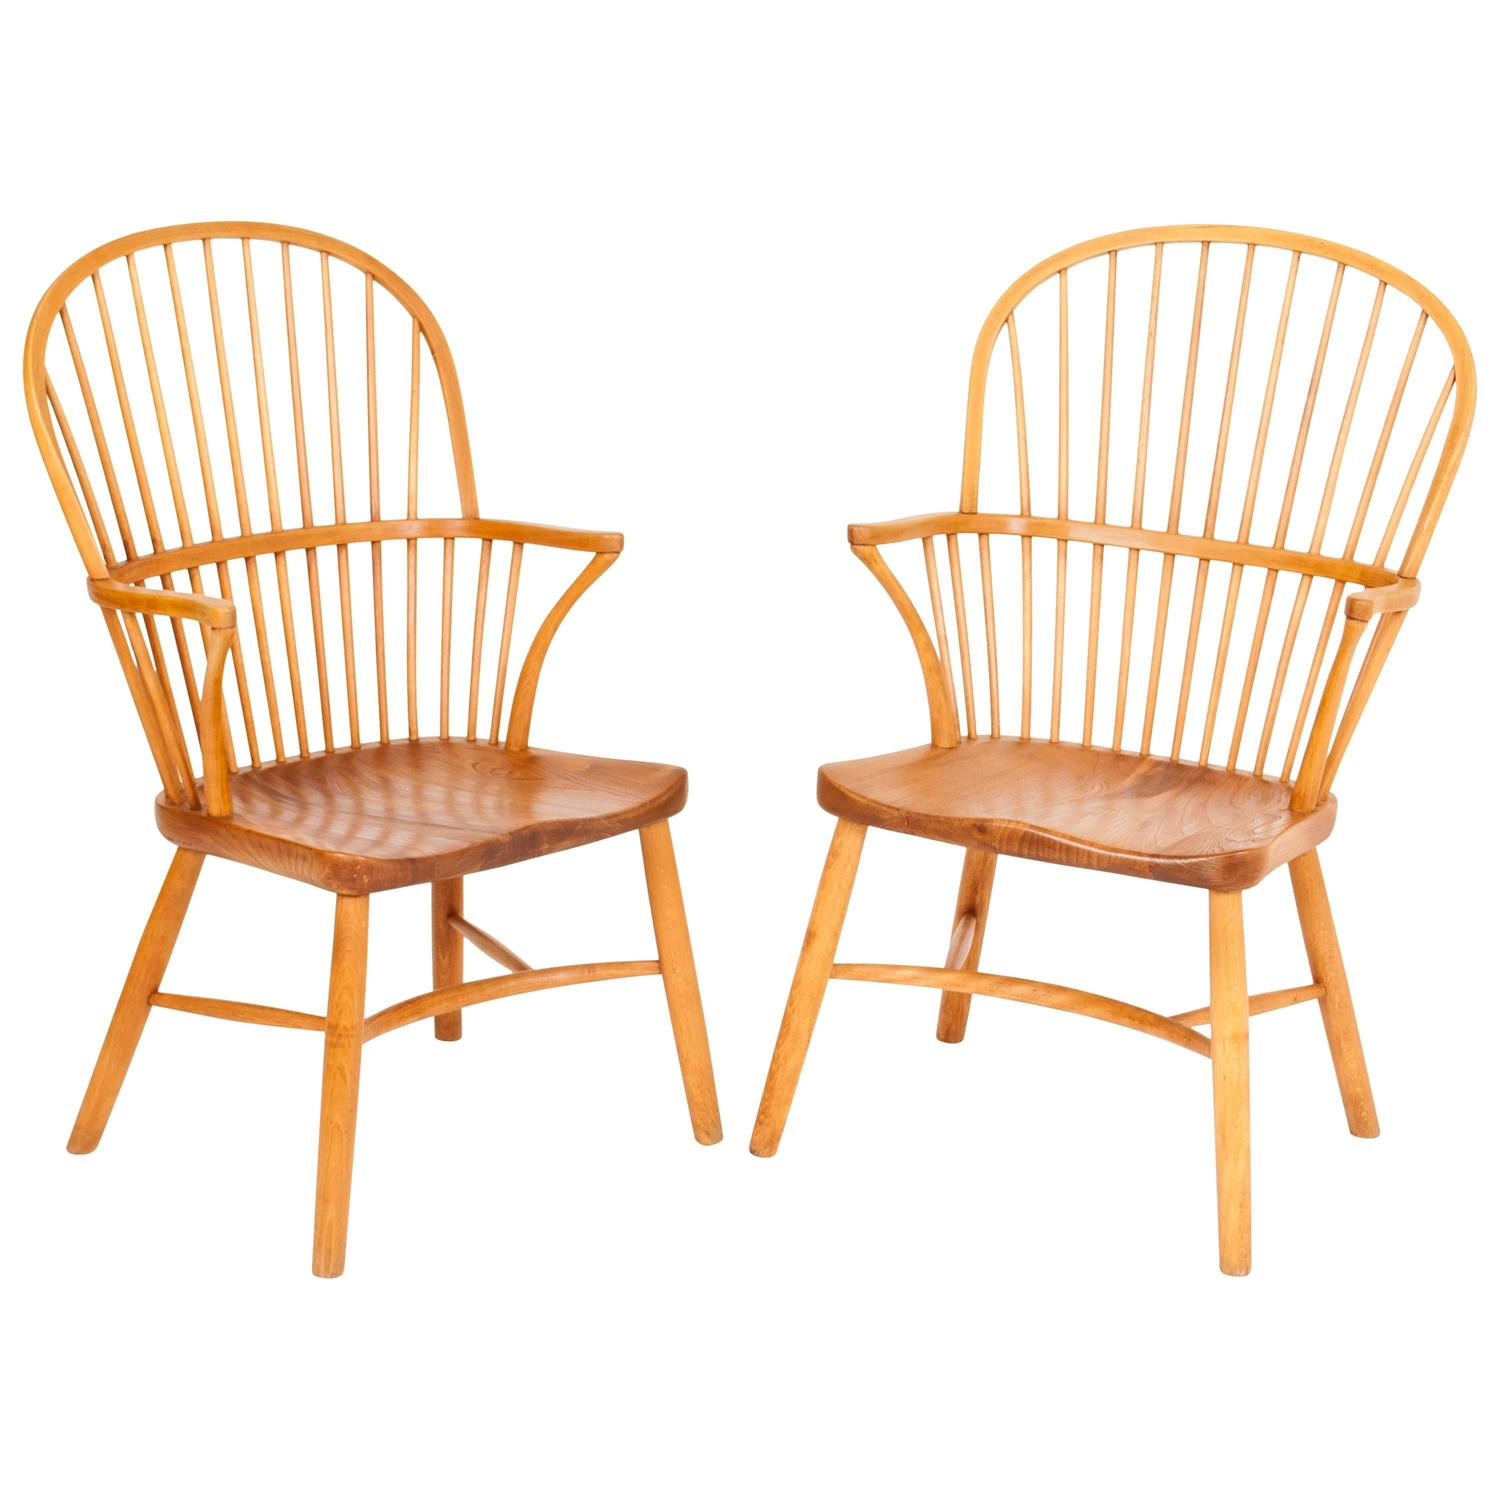 scandinavian modern windsor chairs 6 for sale at 1stdibs